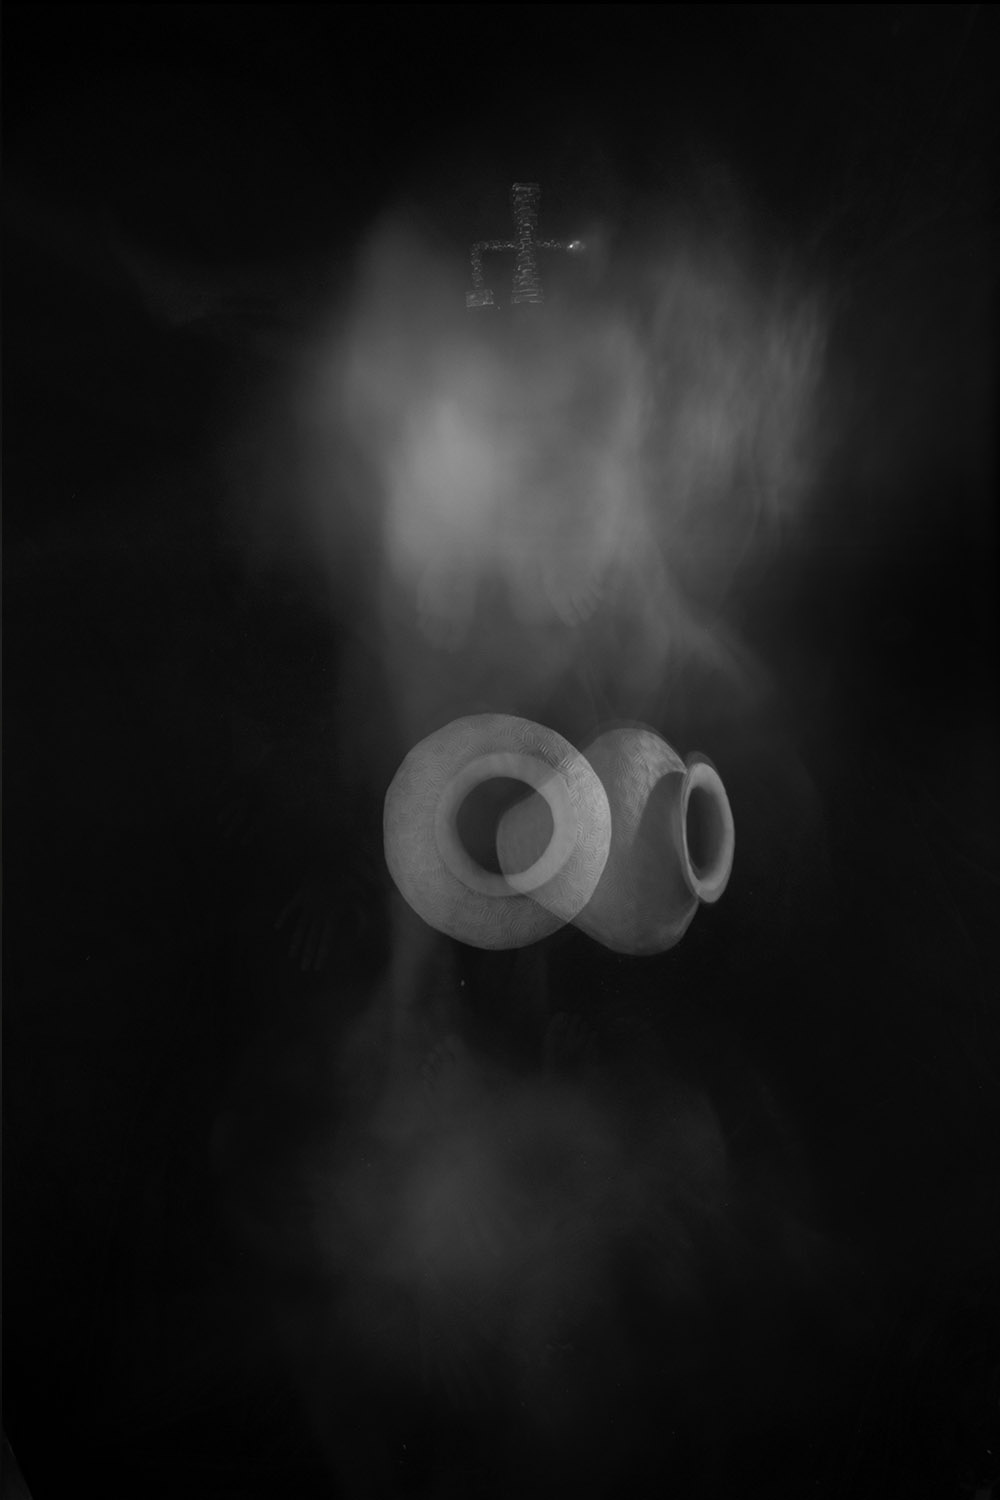 Carla Janse van Rensburg Untitled (10 minute exposure of Transformation Vase Consecration Ritual ) 2018 digital photograph archival ink on Hahnemuhle, 1of20 35.5 x 24.2 cm